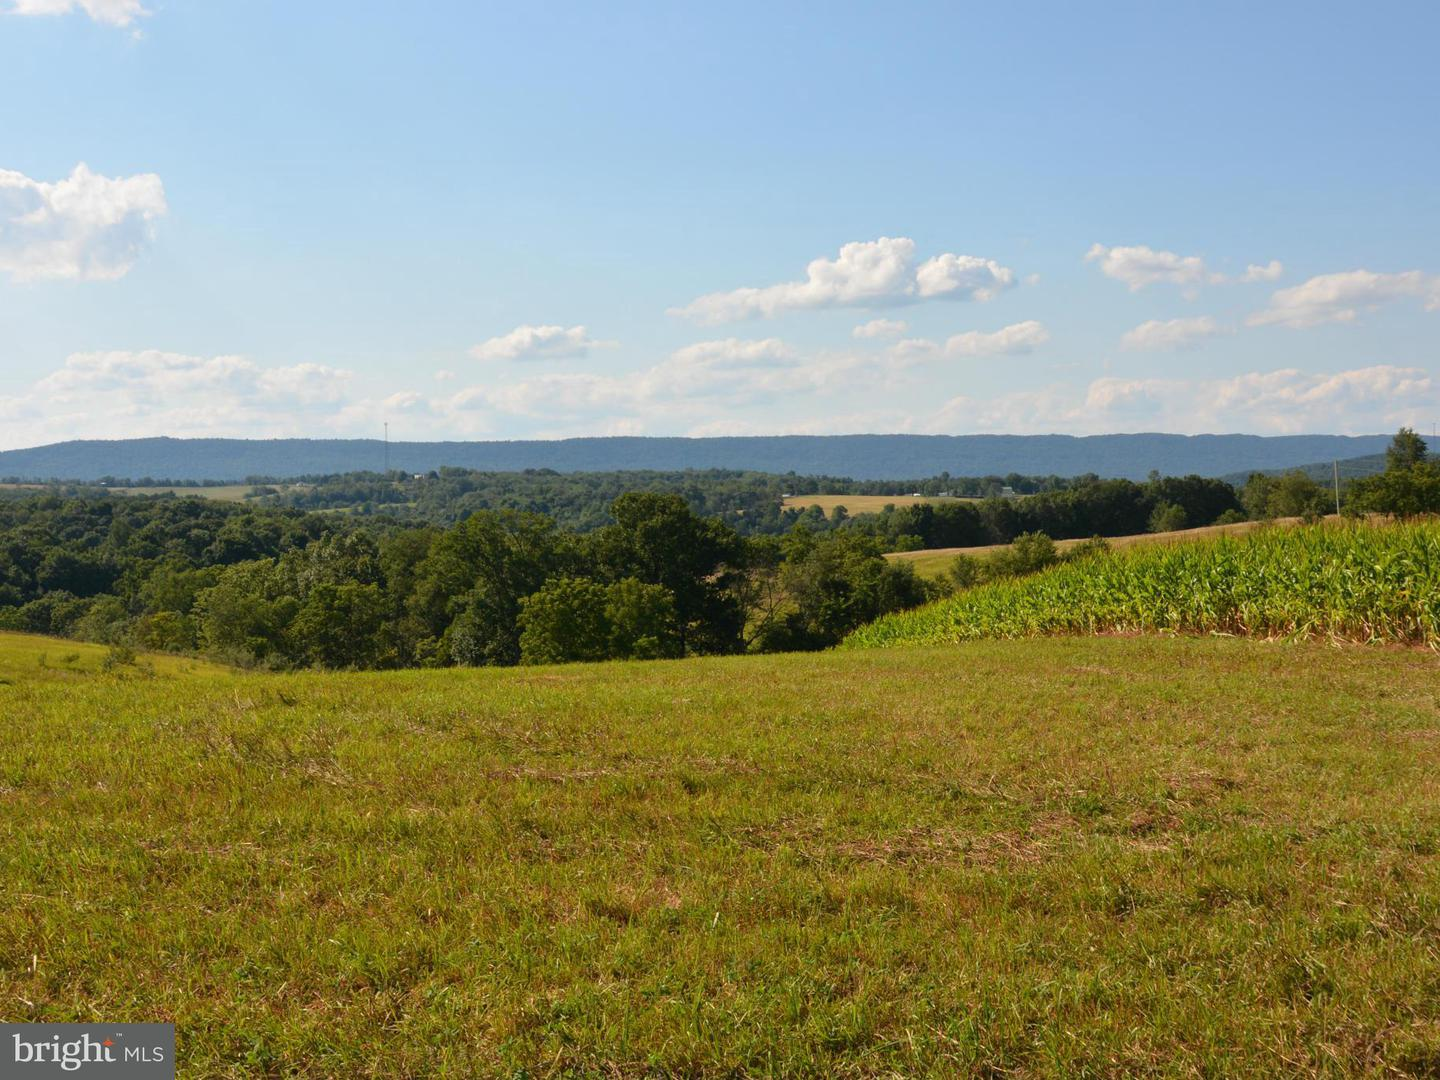 Land for Sale at 0 Ritchey Rd Everett, Pennsylvania 15537 United States